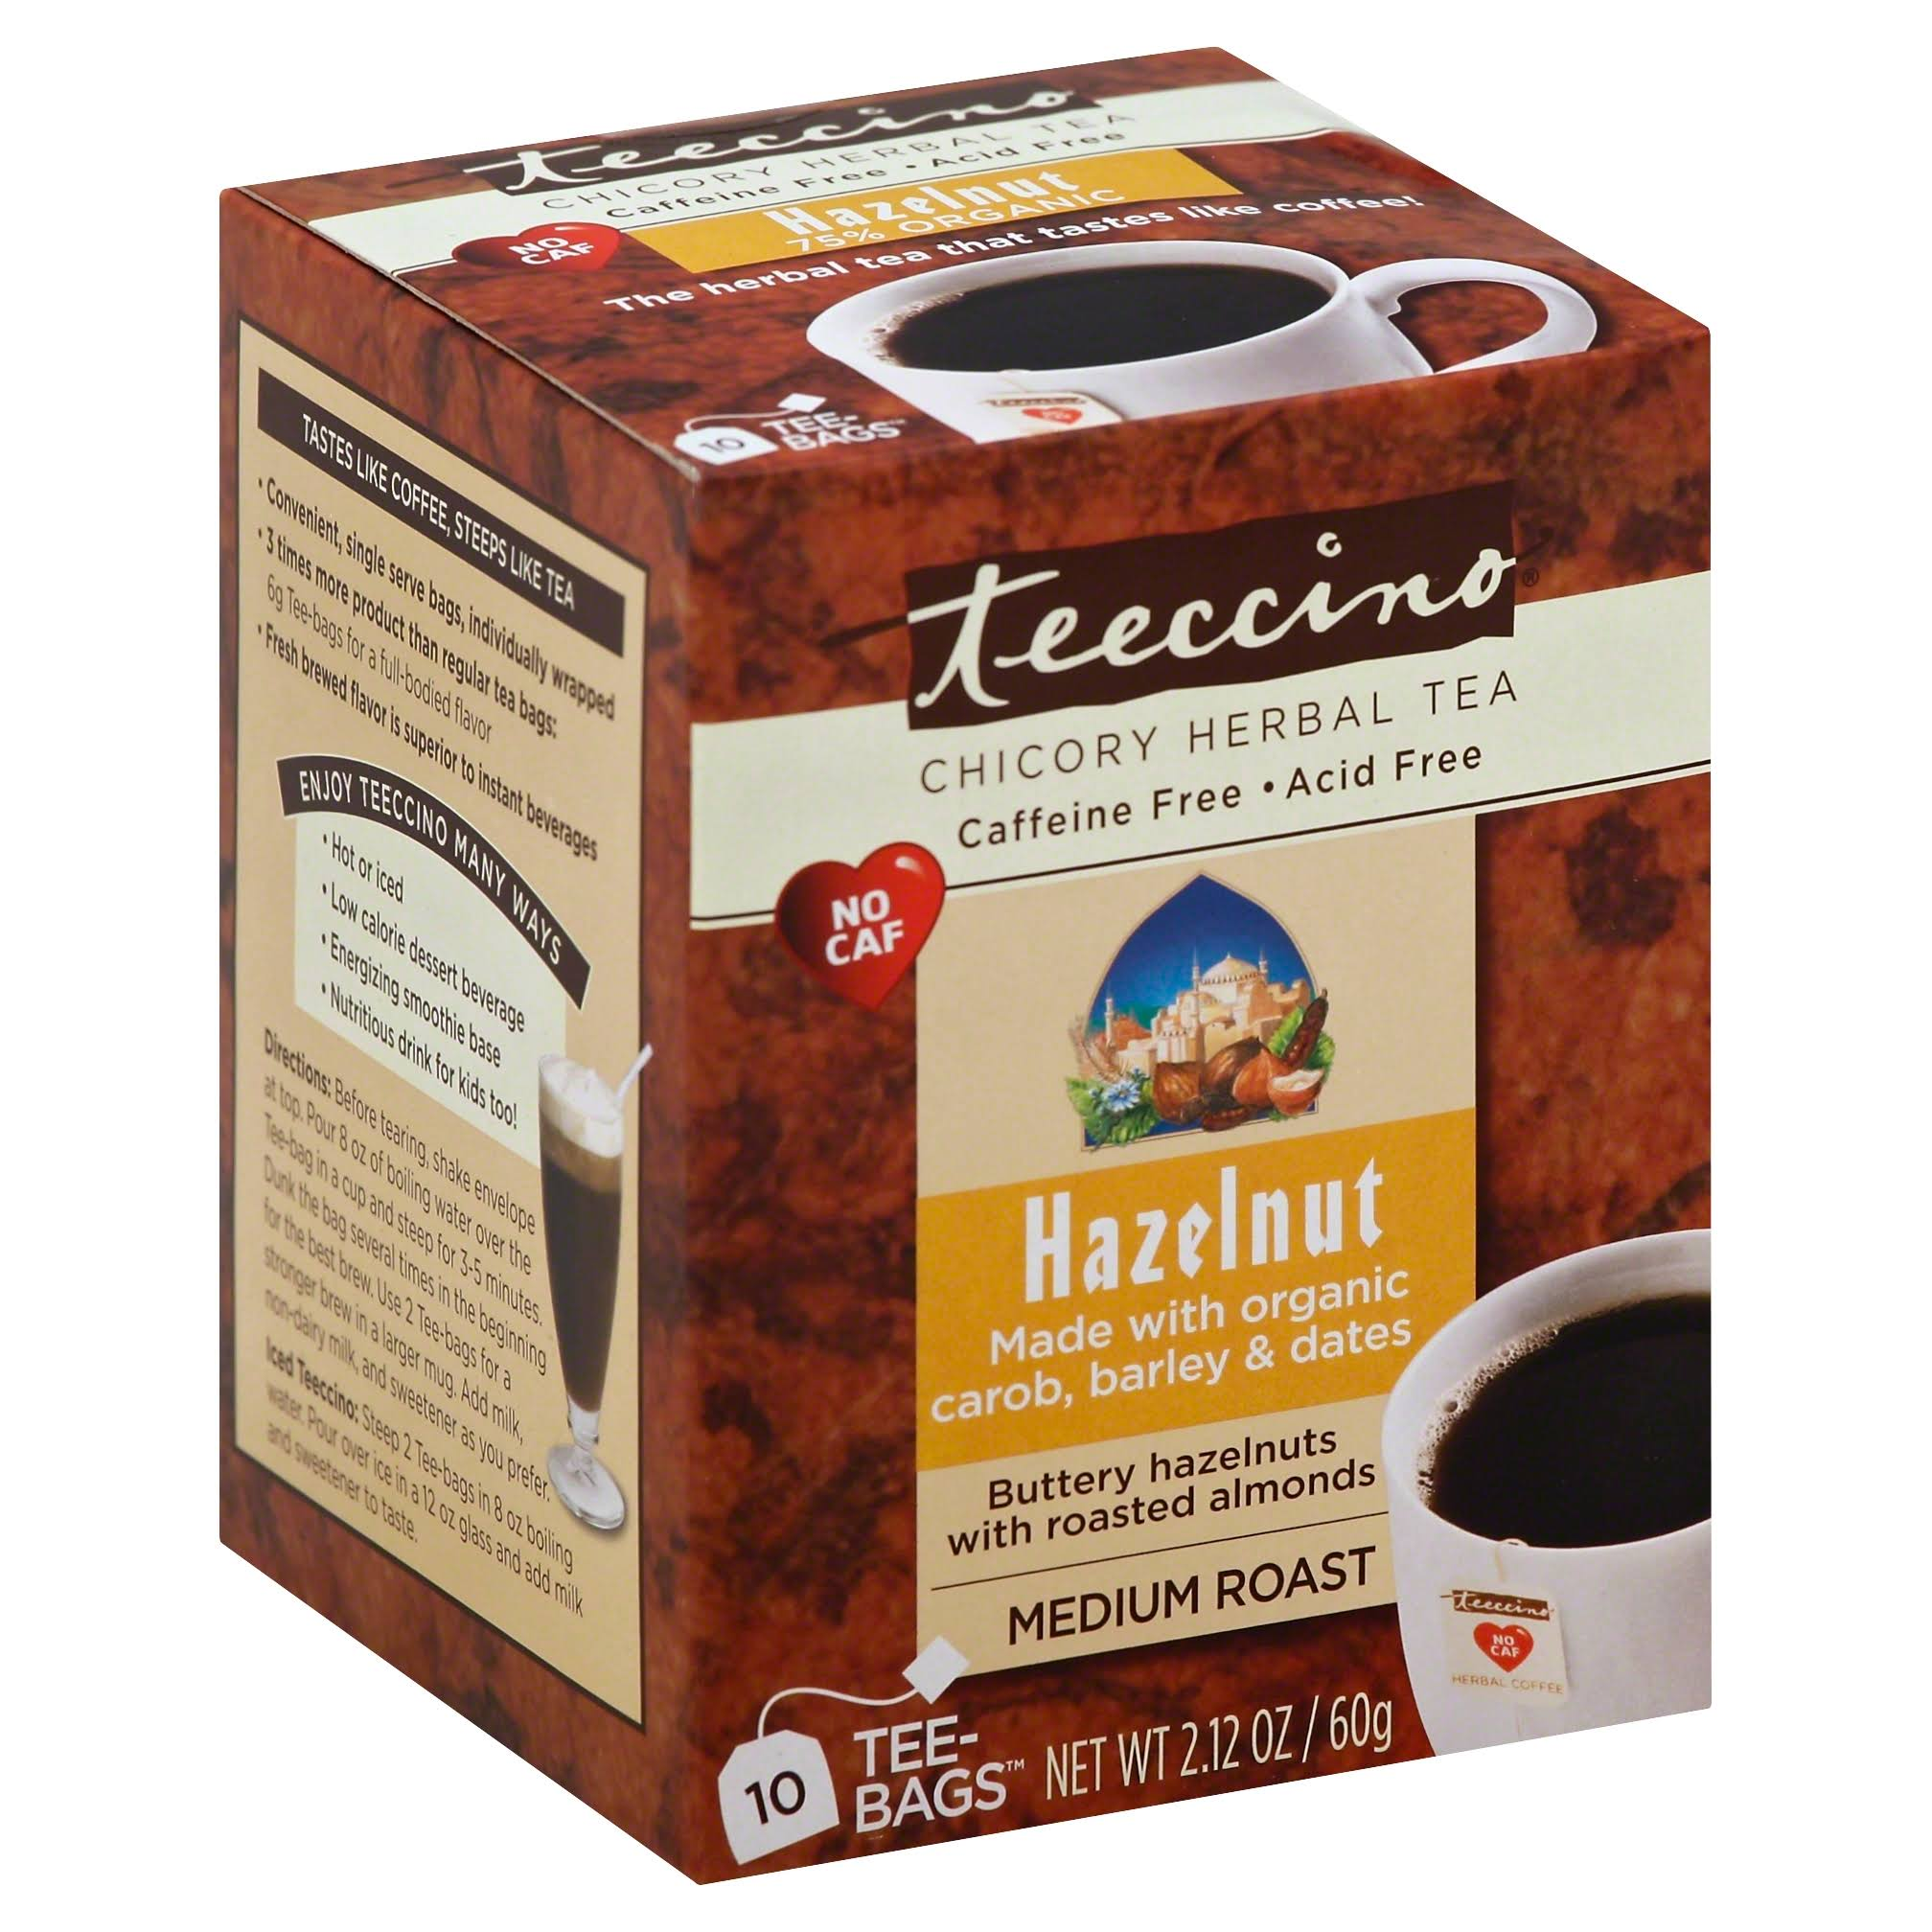 Teeccino Caffeine-Free Herbal Coffee - Hazelnut, 10 Bags